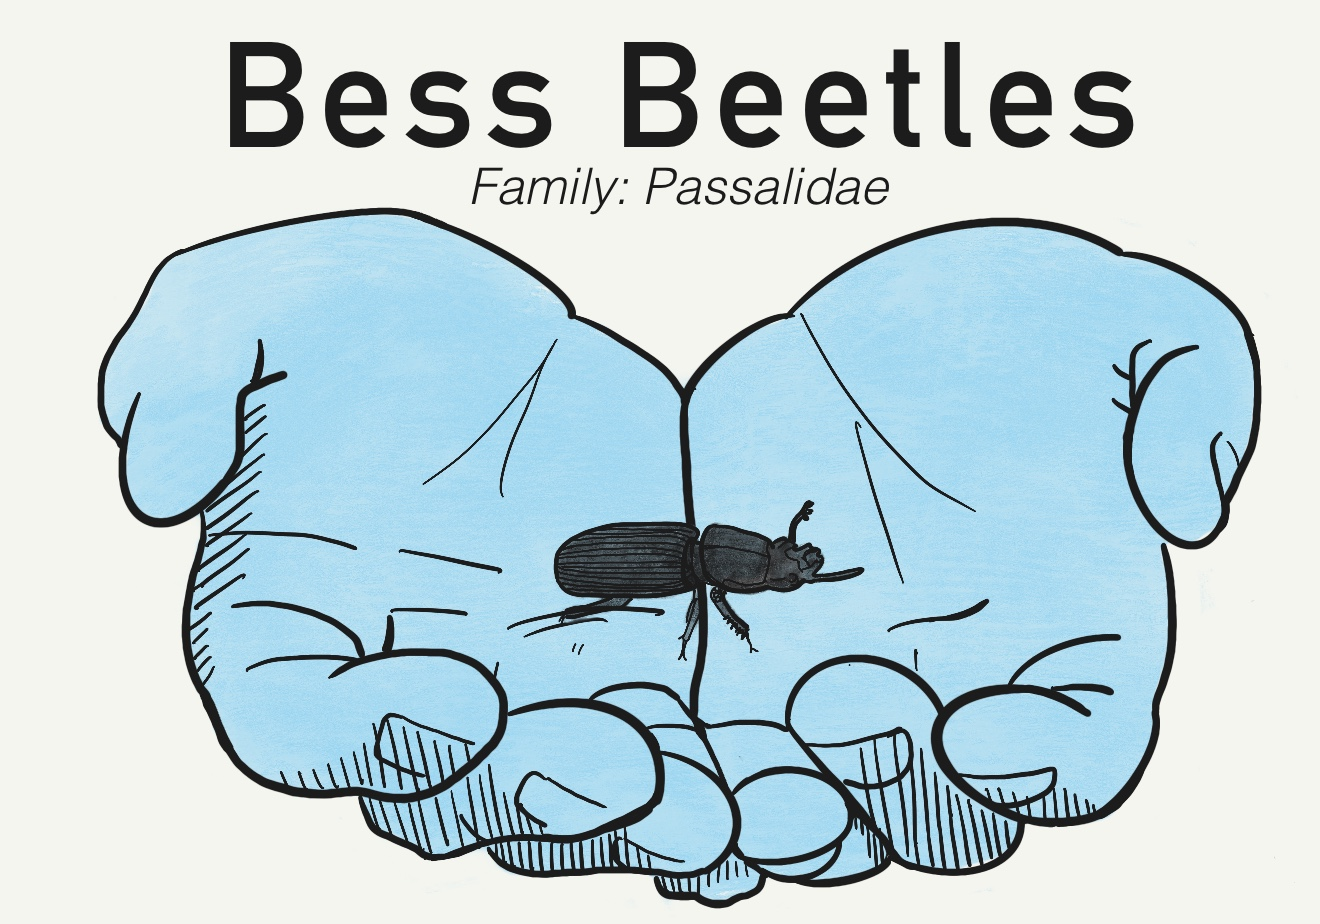 blue hands holding a bess beetle